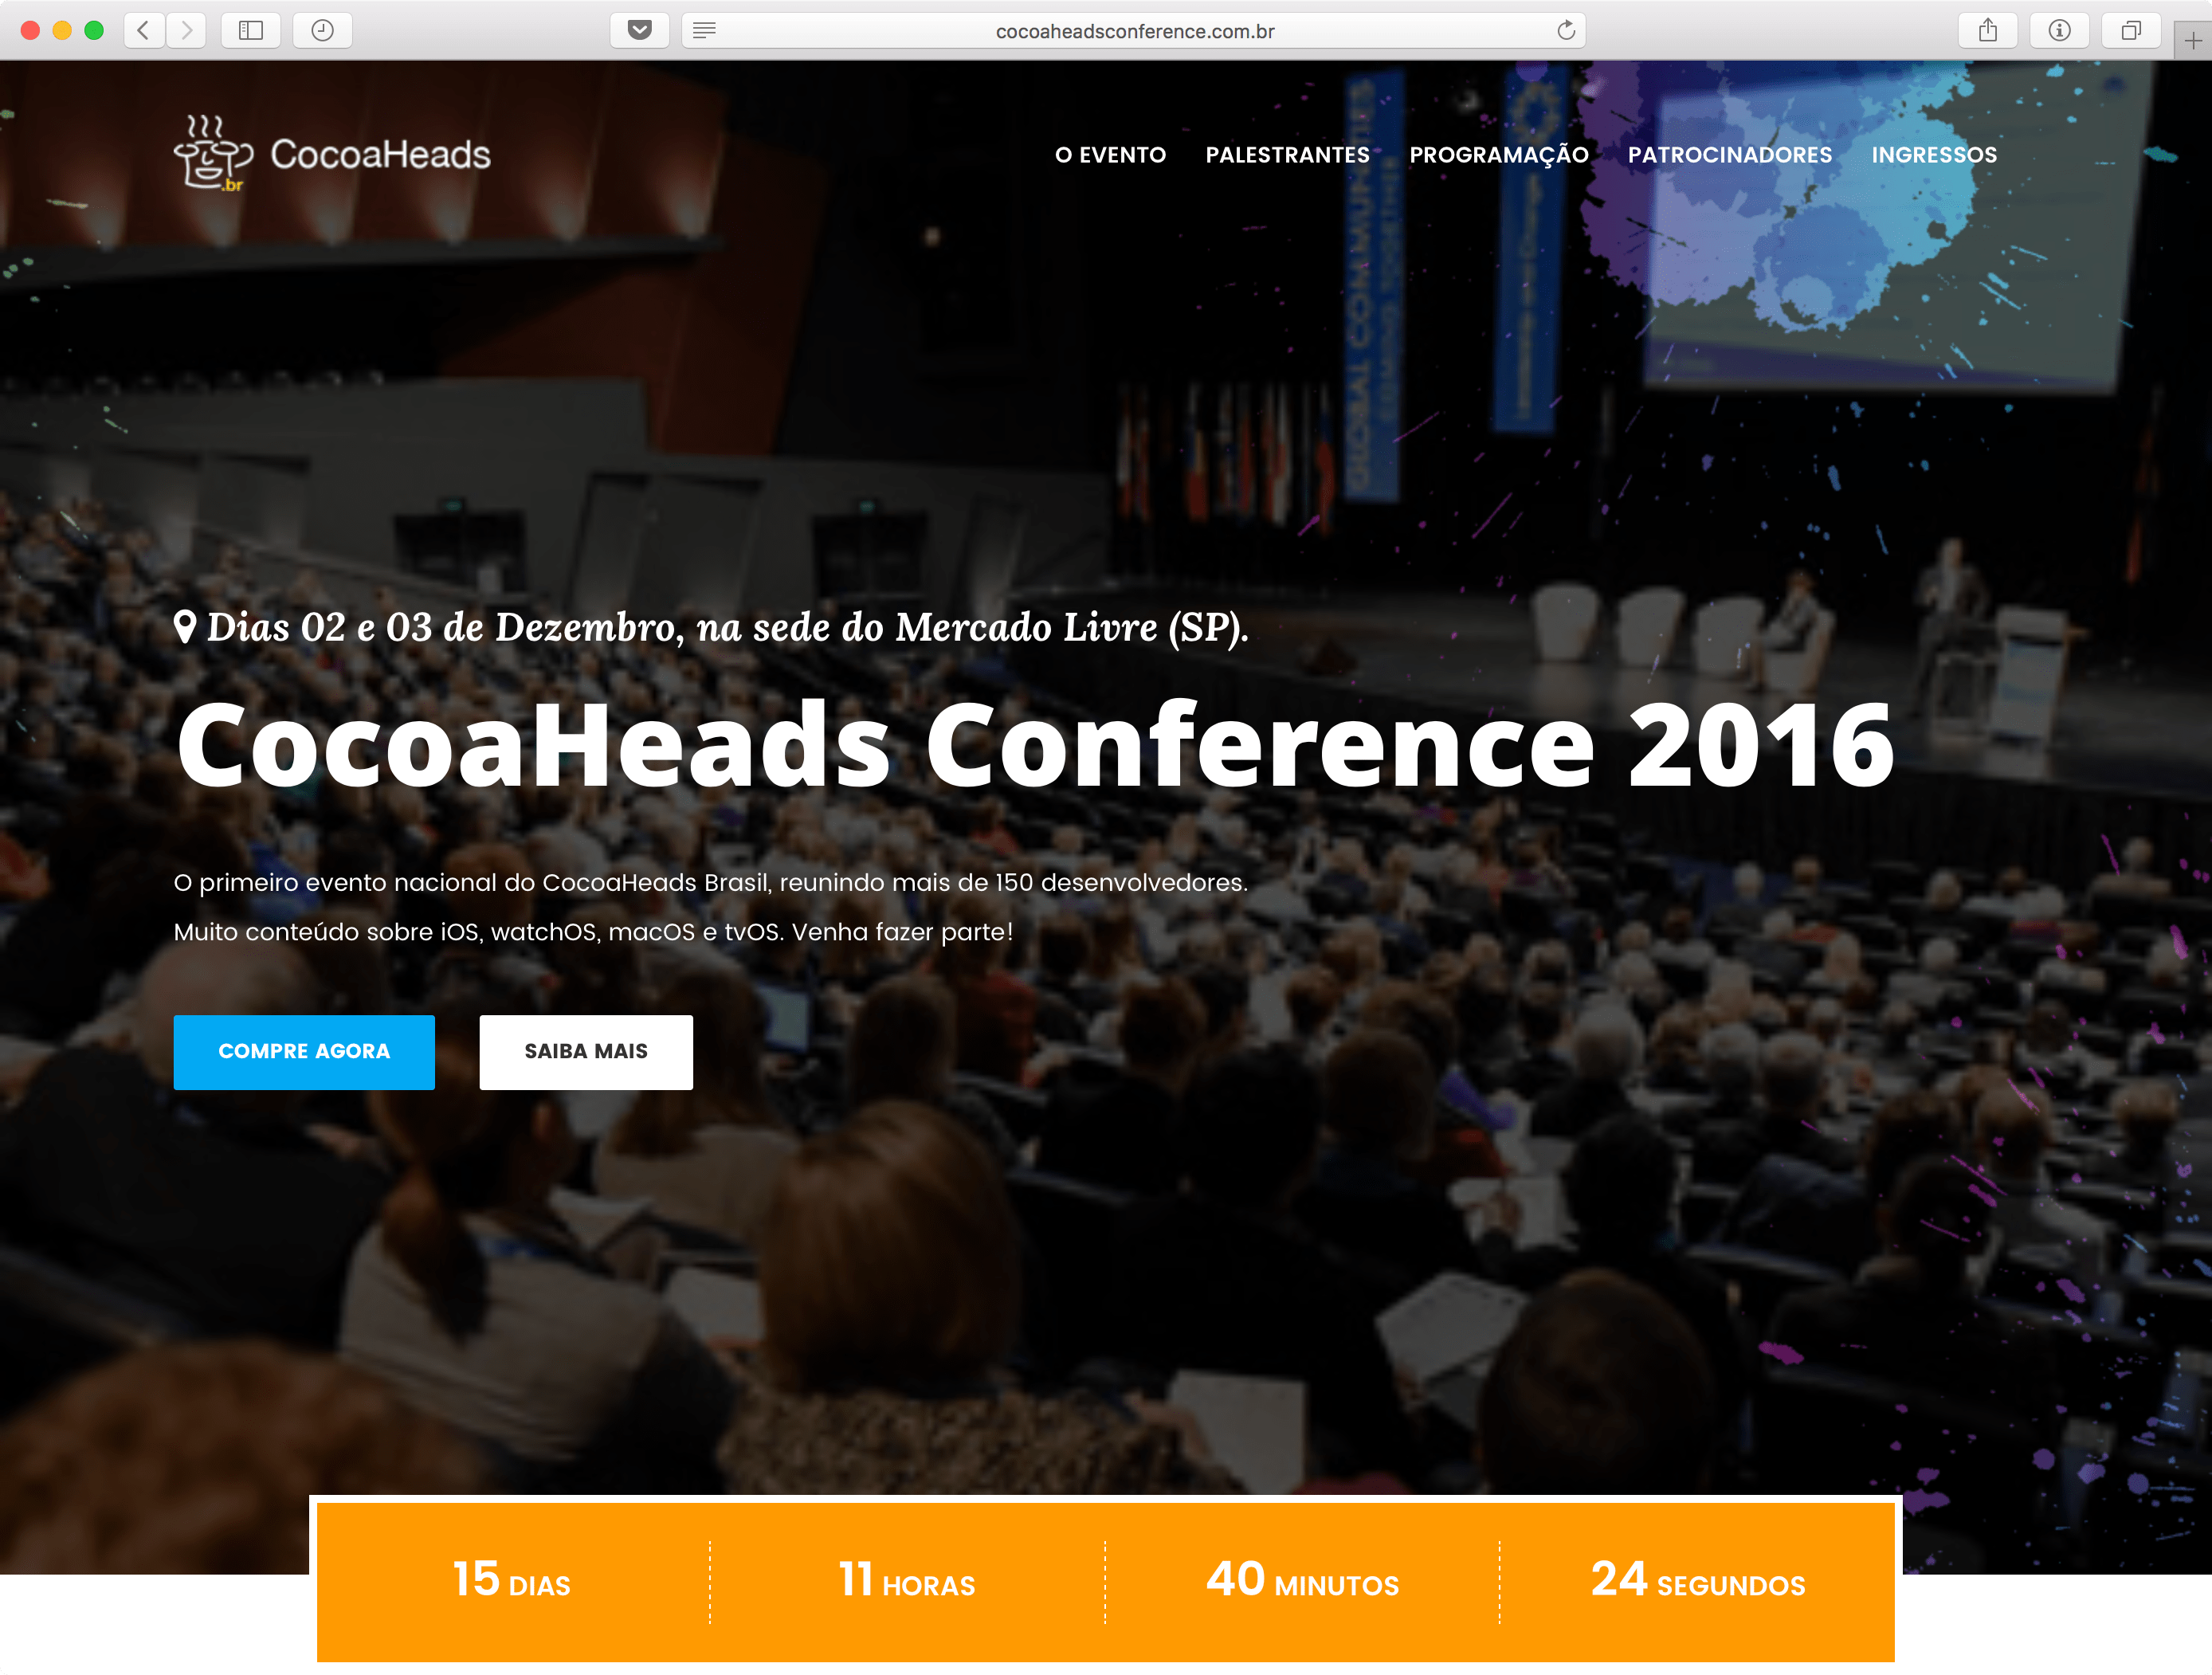 Cocoaheads Conference 2016